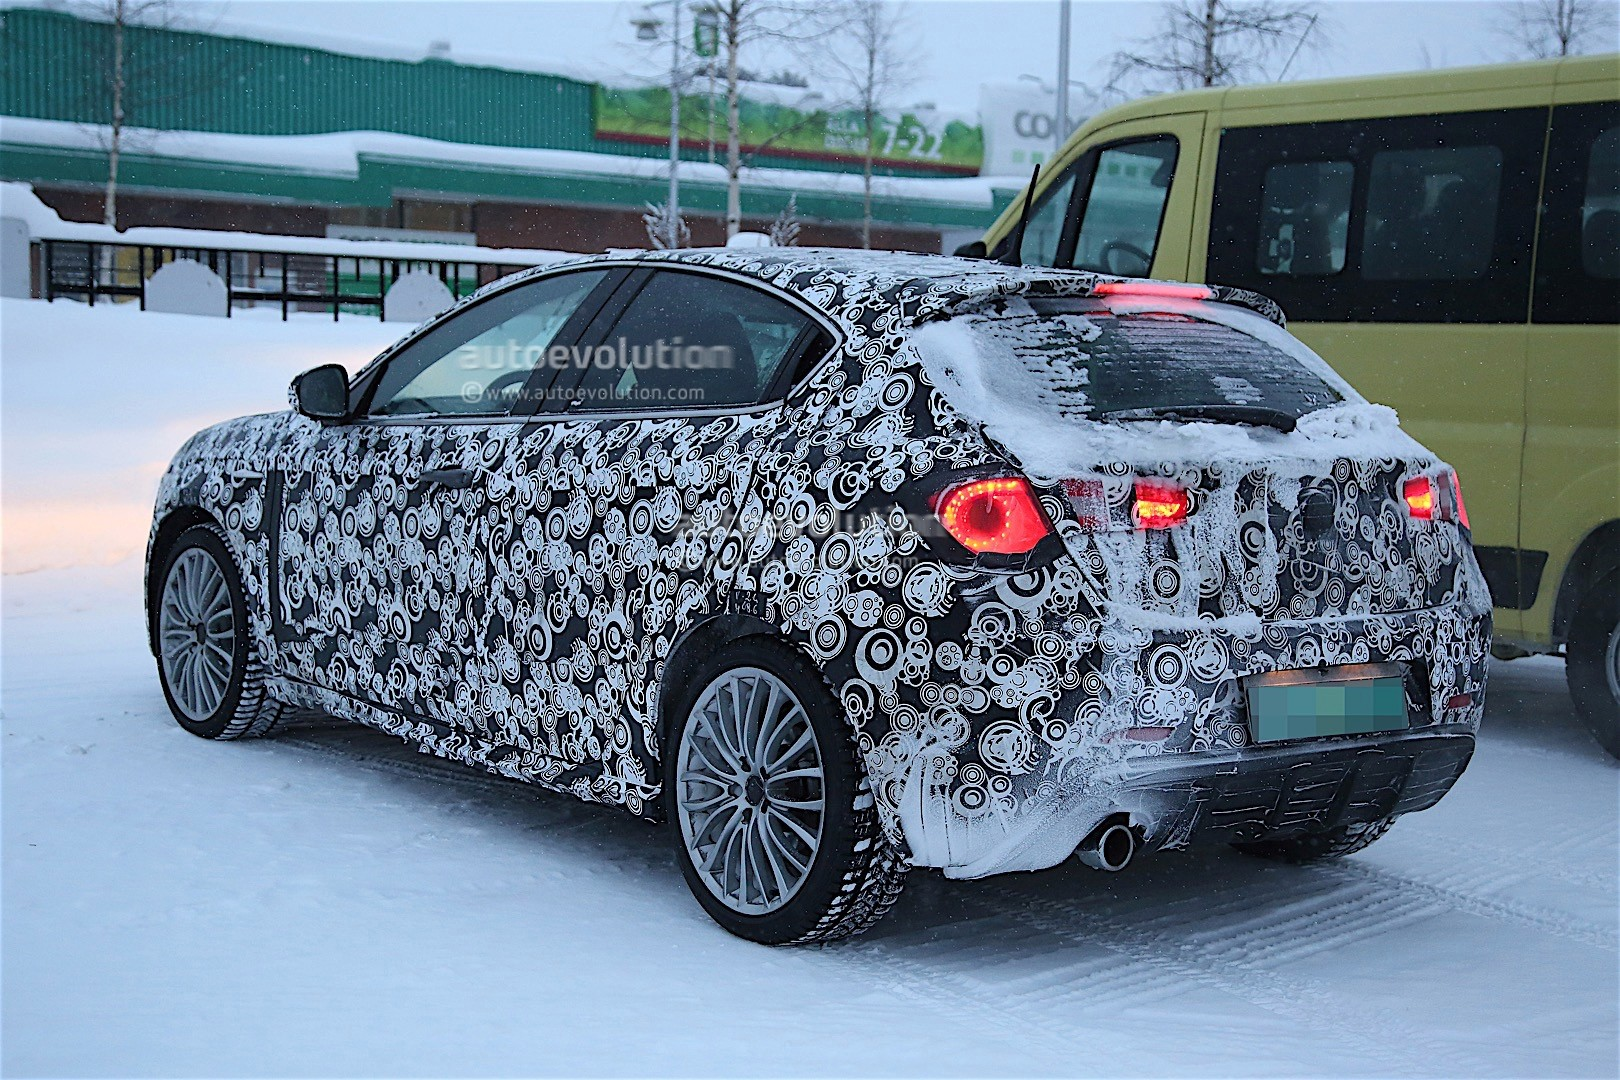 2017 alfa romeo giulietta facelift spied winter testing. Black Bedroom Furniture Sets. Home Design Ideas